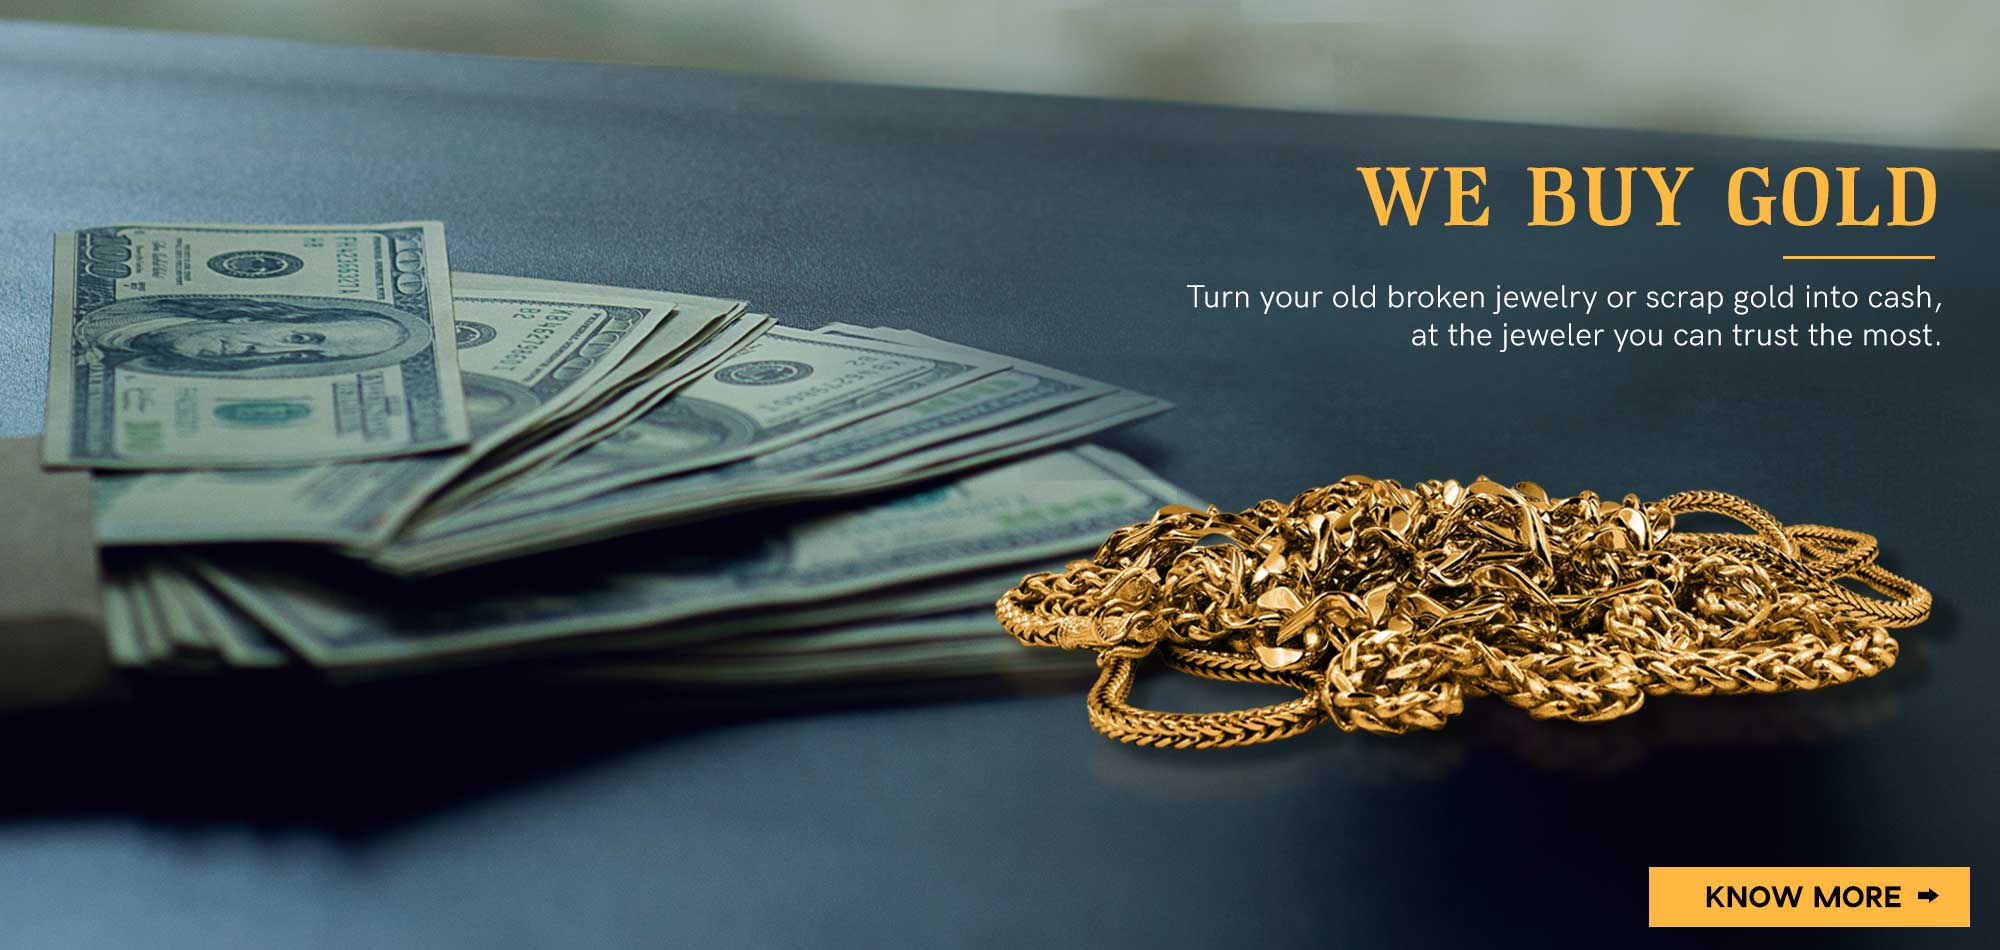 We Buy Gold At At M M Jewelers In Birmingham, AL